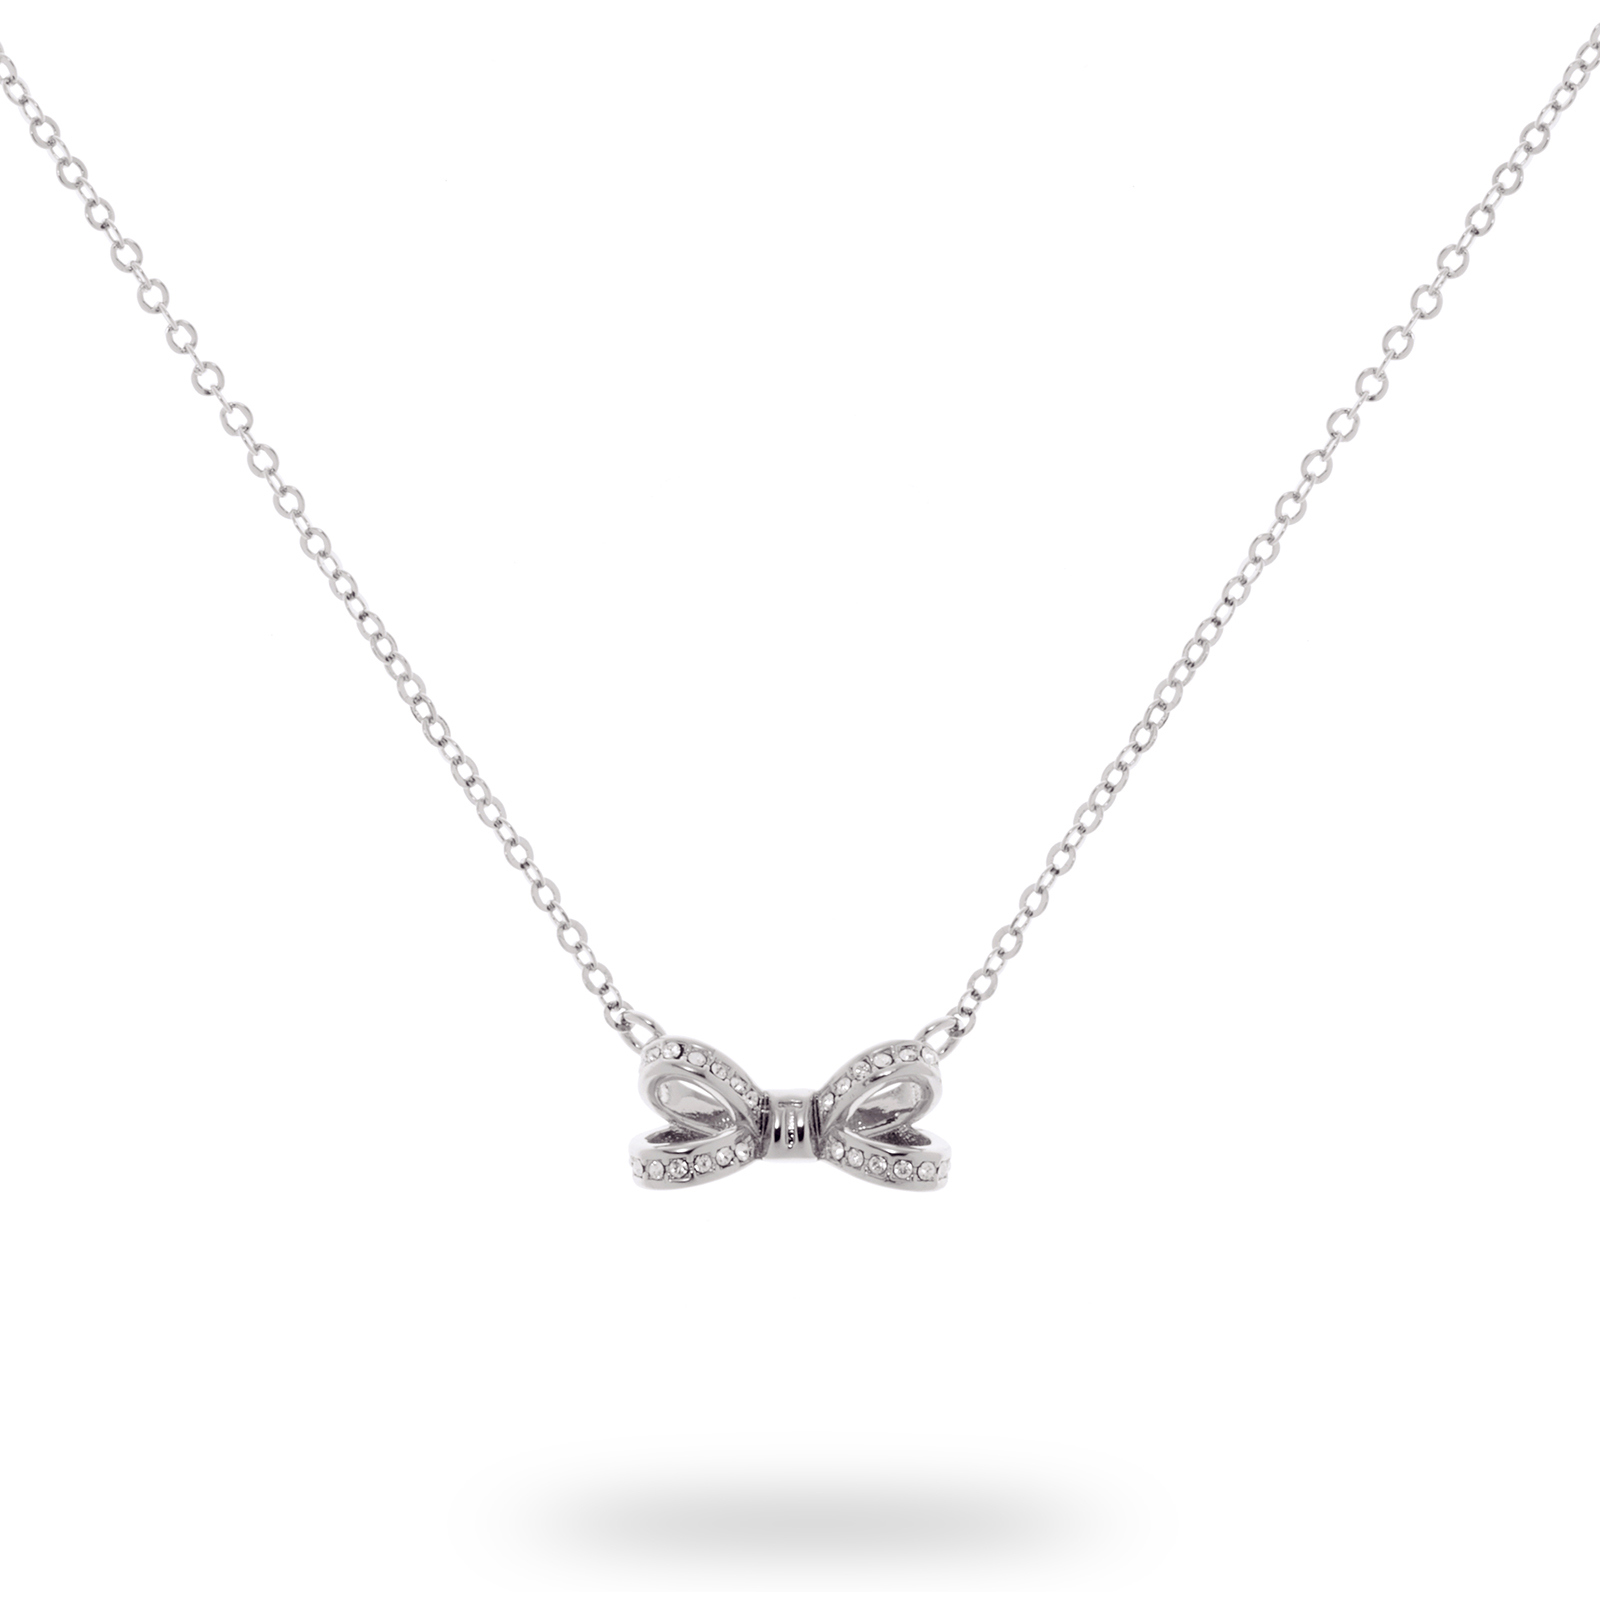 25282f5fd1d Ted Baker Silver Plated Olessi Mini Opulent Pave Bow Necklace ...